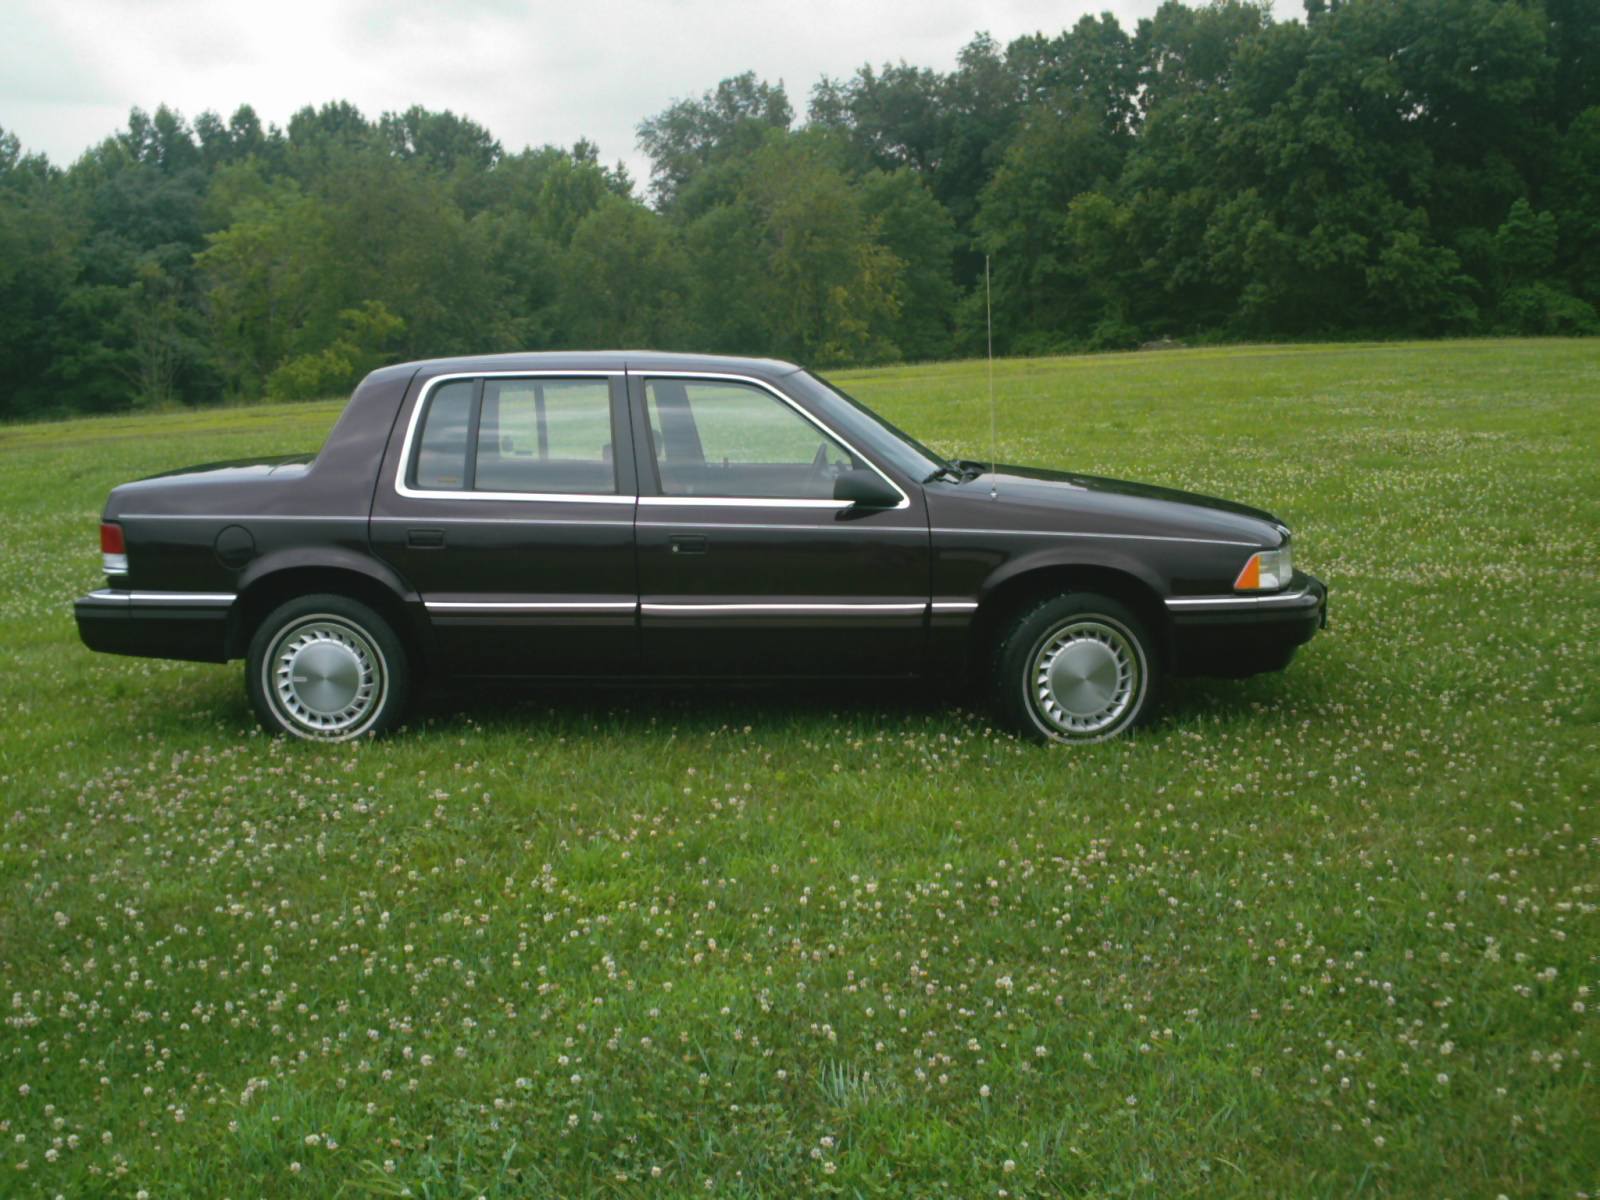 1990 plymouth voyager with 1990 Plymouth Acclaim Pictures C3257 on Watch additionally 5784 1995 Plymouth Voyager 12 further 1987 Plymouth Horizon Overview C15916 as well 1990 Plymouth Acclaim Pictures C3257 pi10659866 also 231928264504.